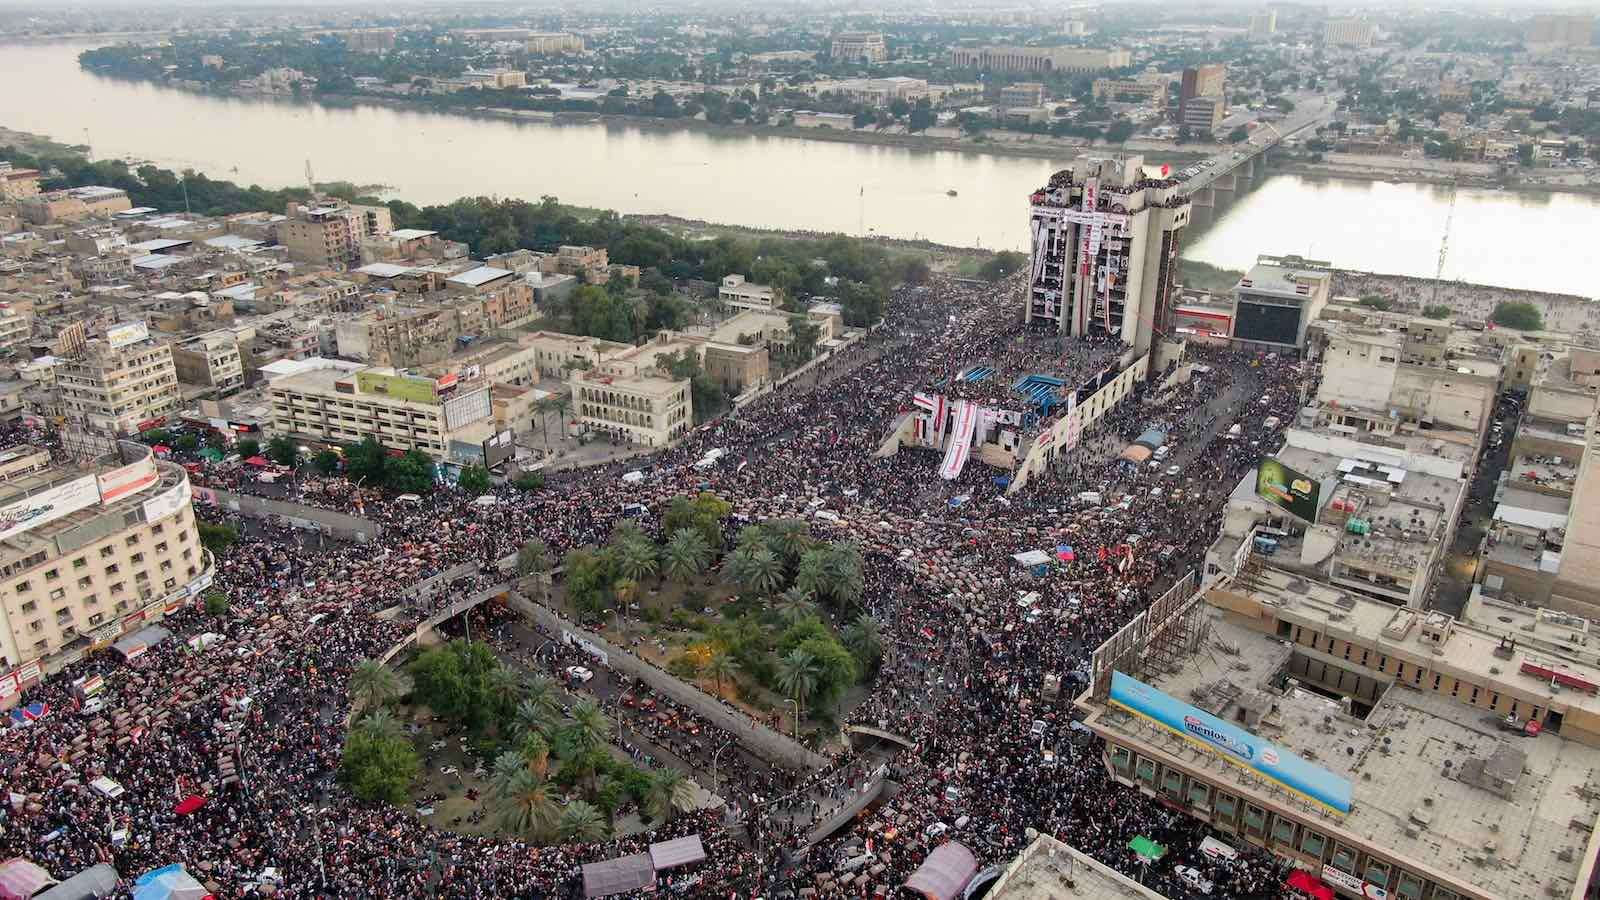 Iraqi protesters gathering last month at Baghdad's Tahrir square (Photo: AFP via Getty Images)